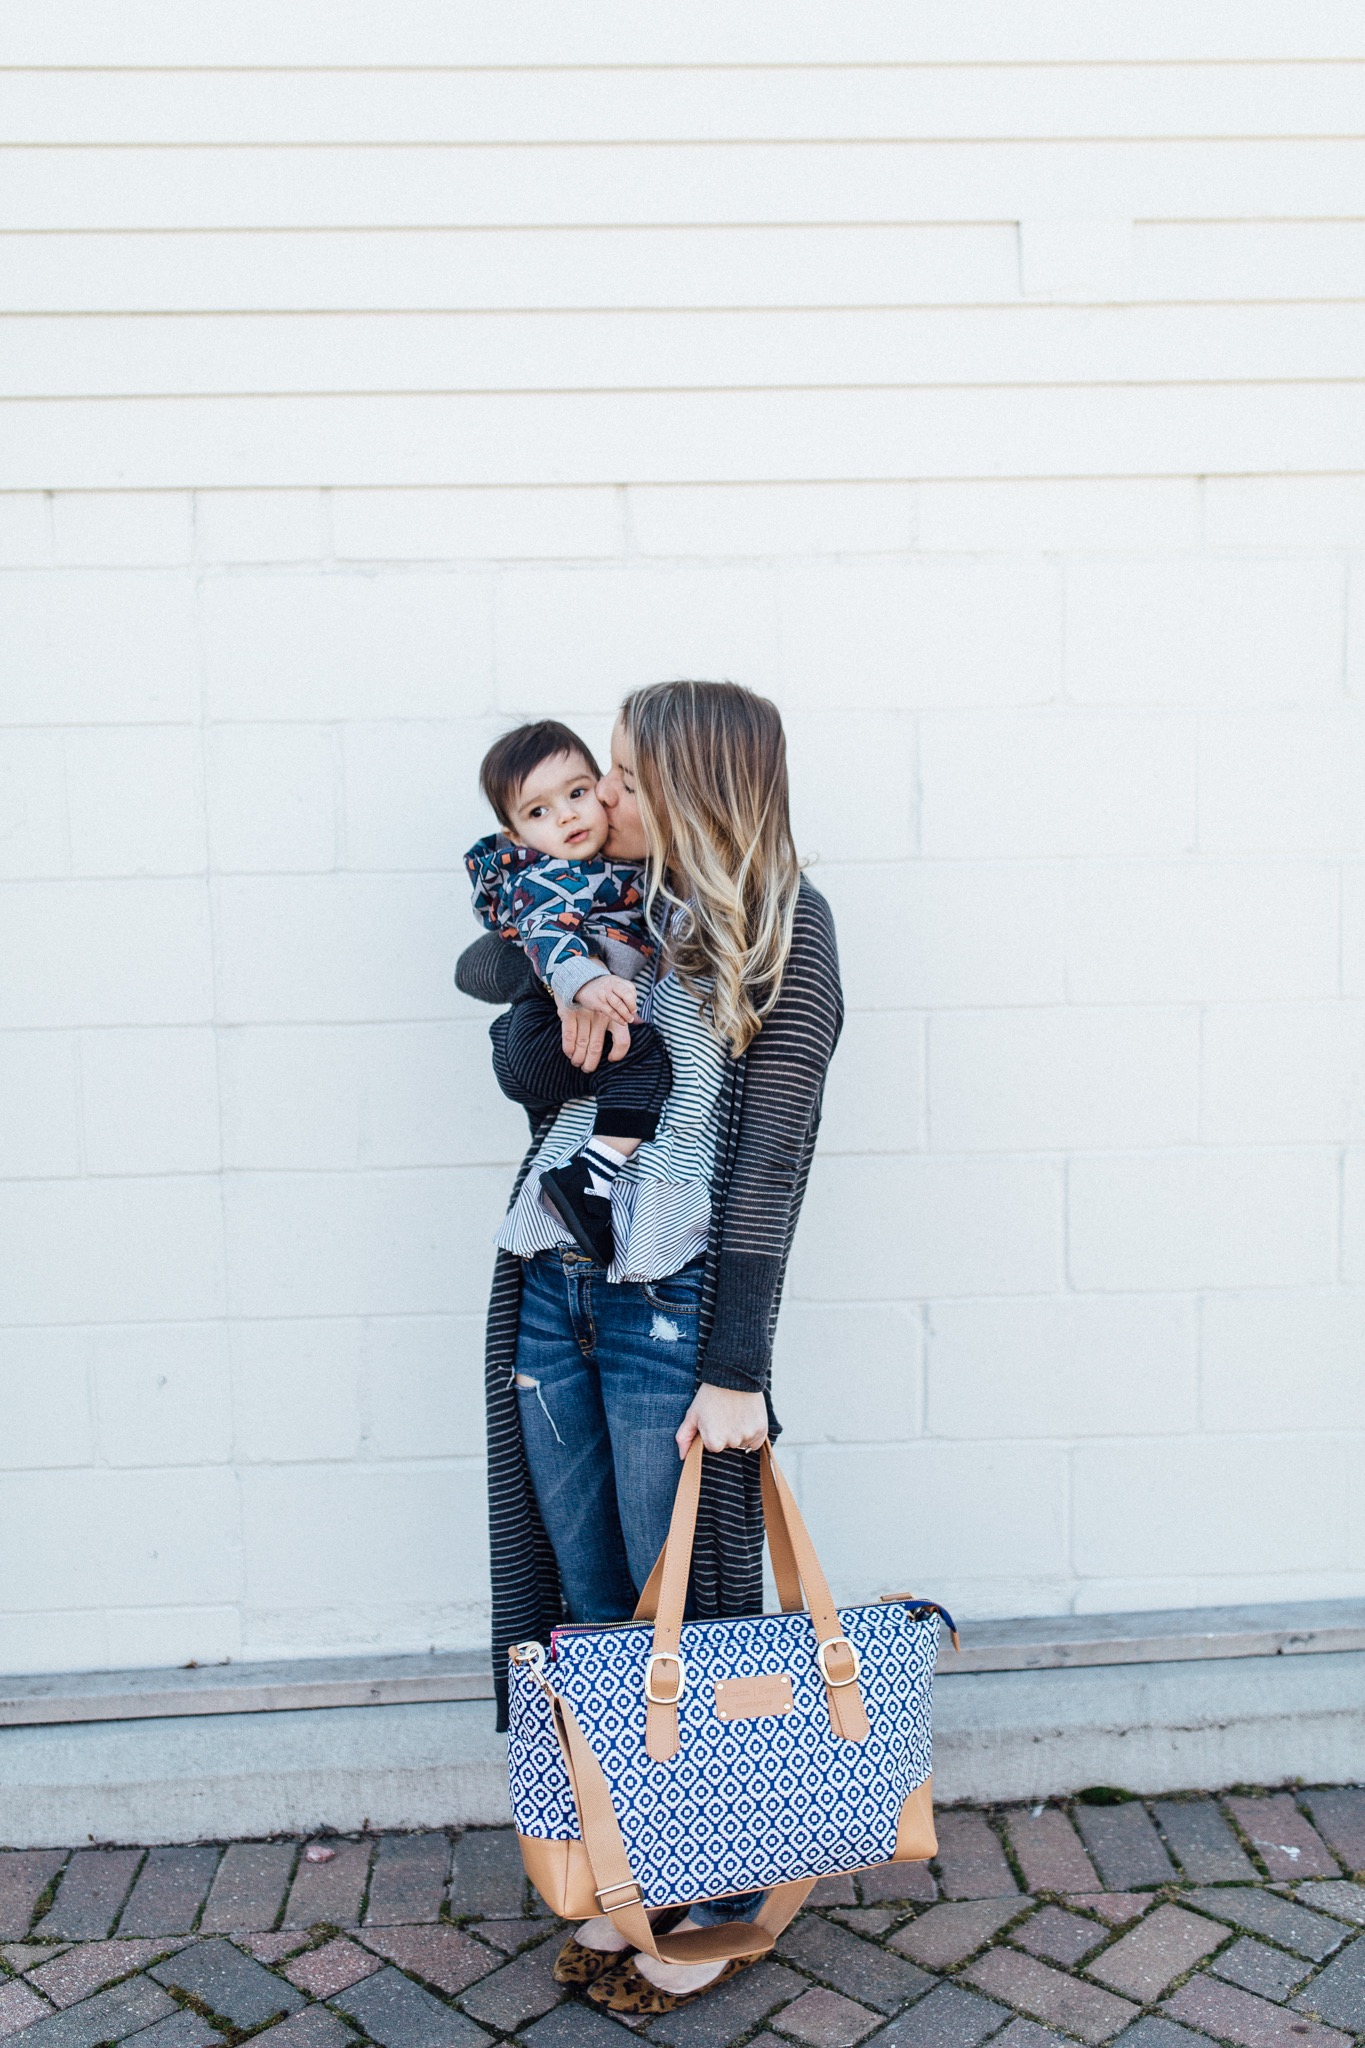 Austin Fowler Bag Review - Baby kisses carrying a blue and tan organized diaper bag by minneapolis brand austin fowler